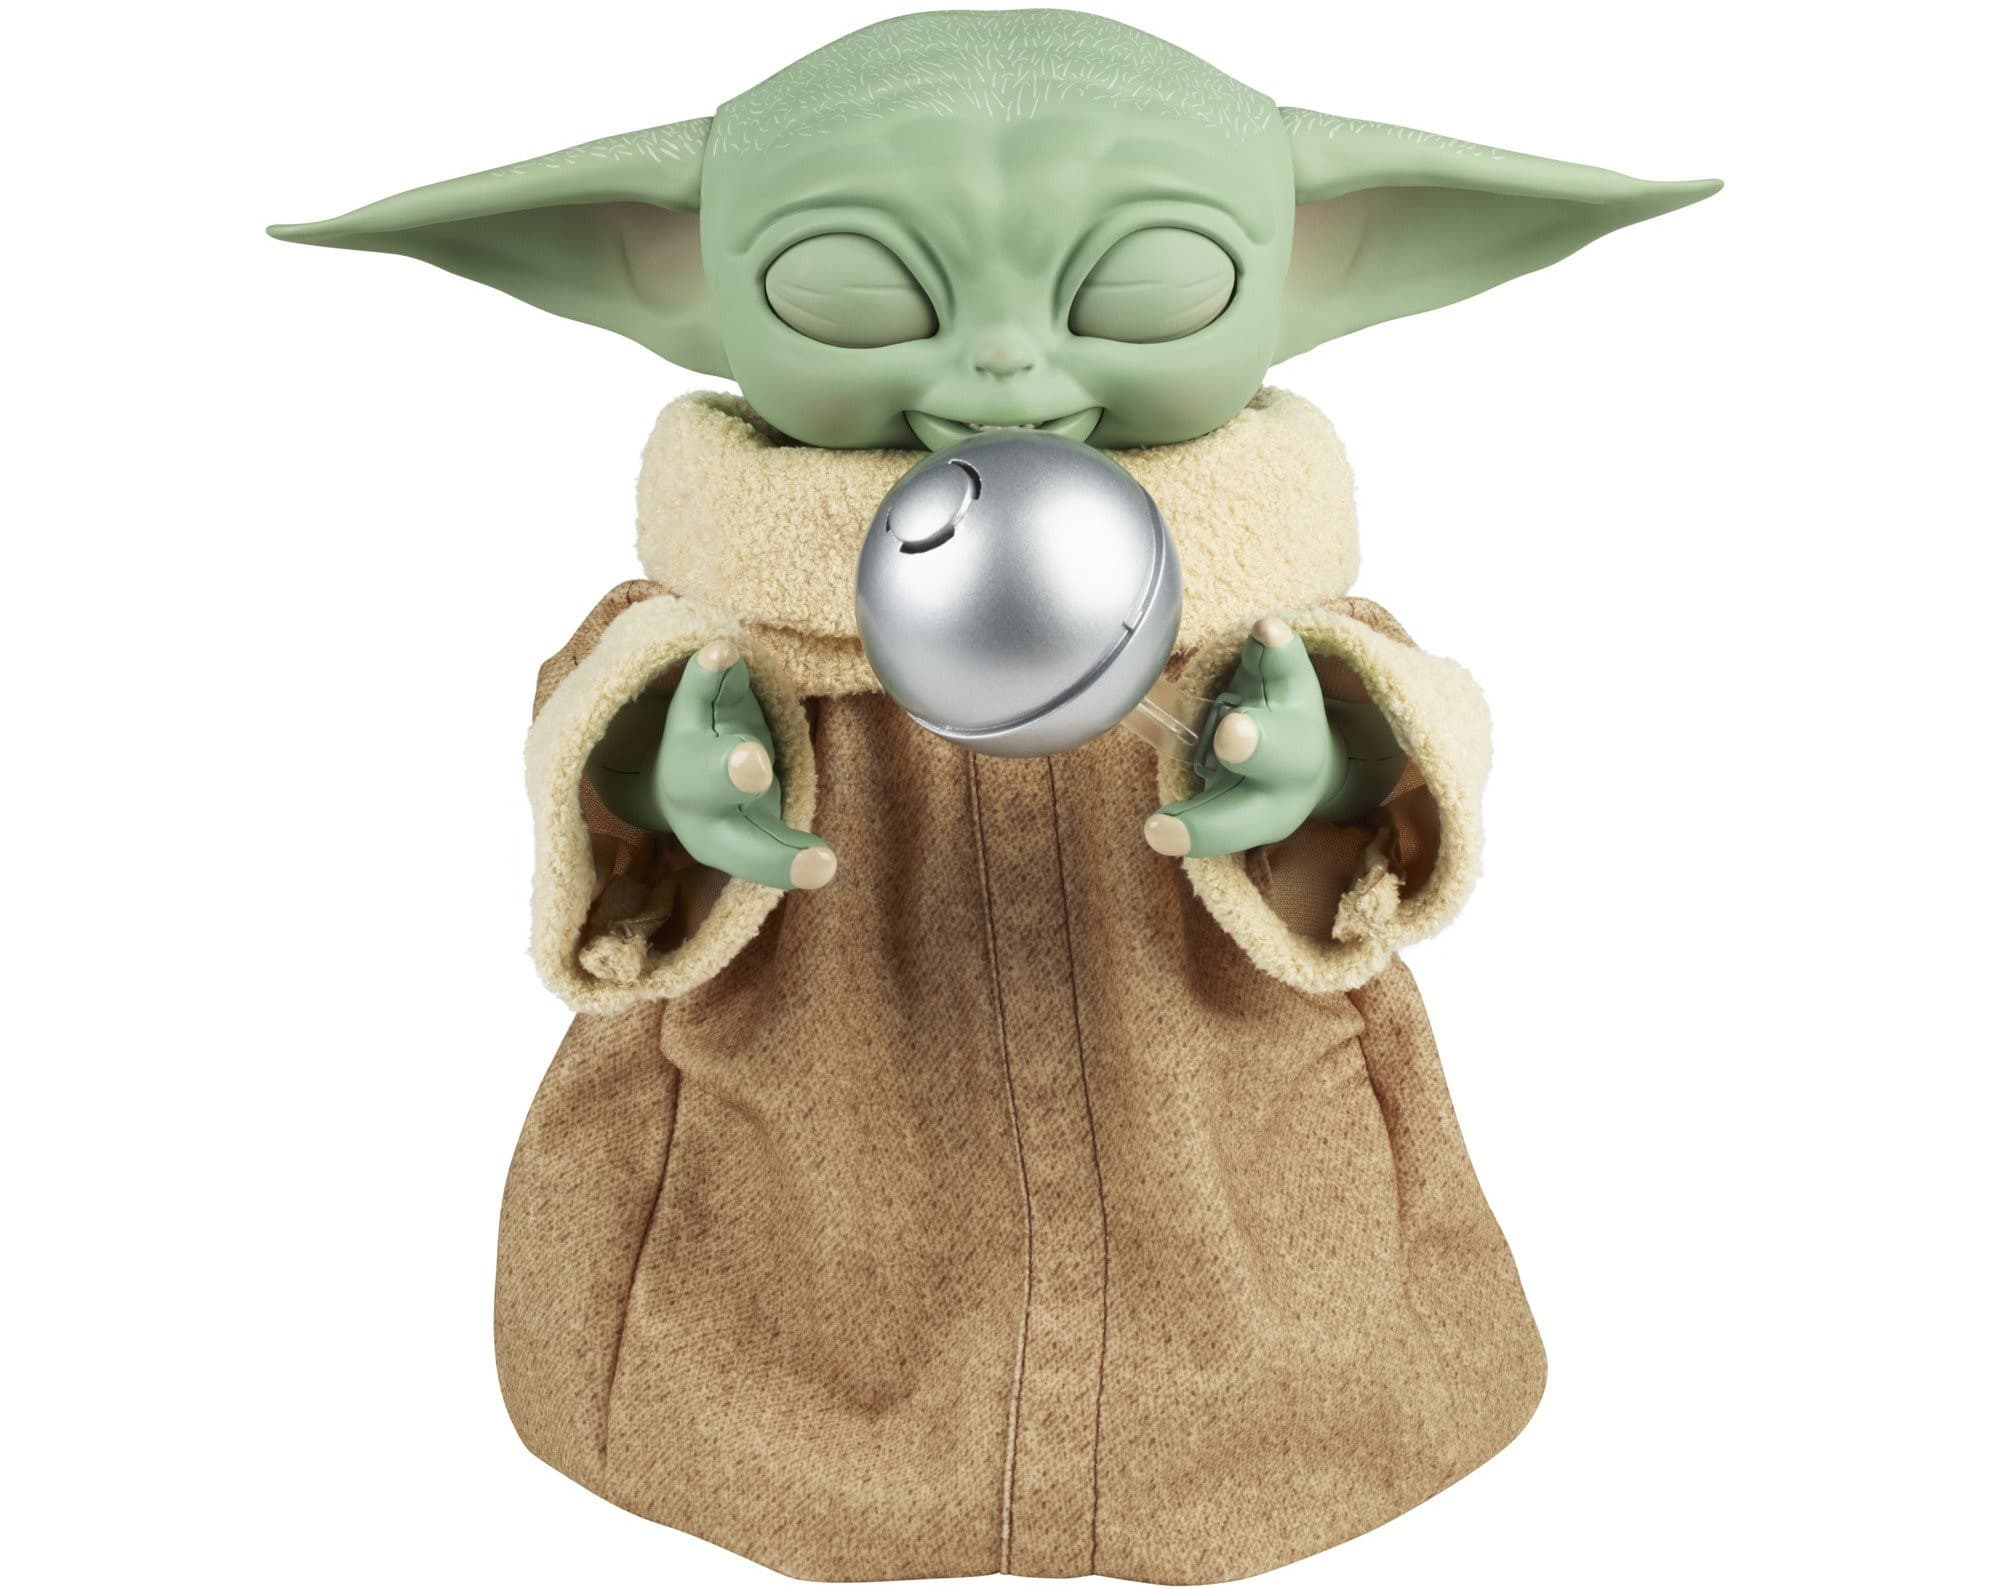 Hasbro's new Baby Yoda animatronic toy is inspired by Grogu's love for snacking 20